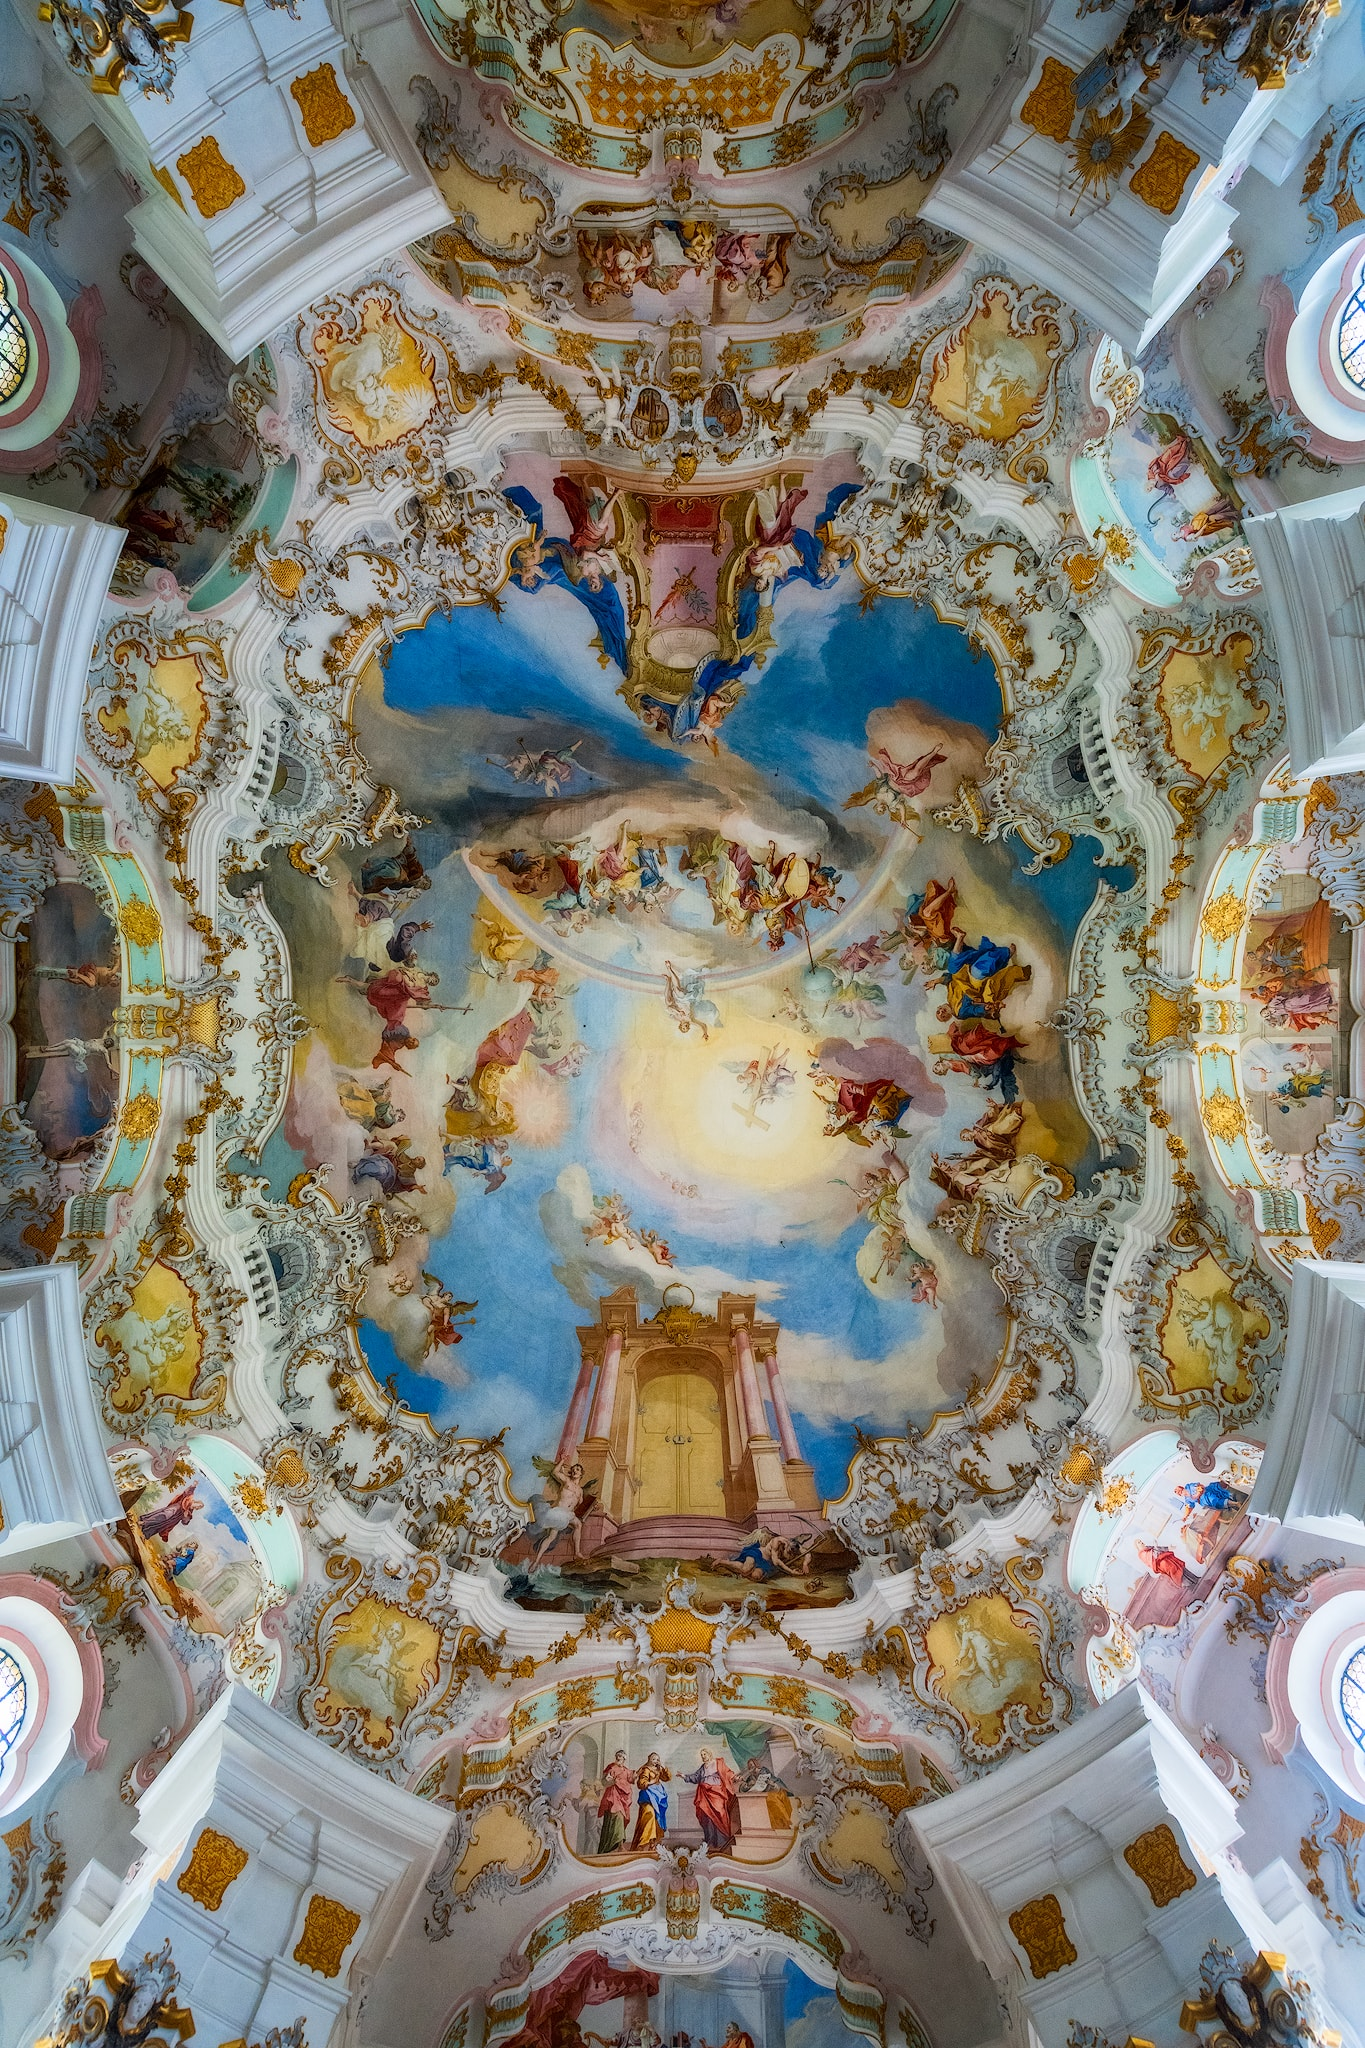 Wieskirche or The Pilgrimage Church of Wies interior in Bavaria, Germany.